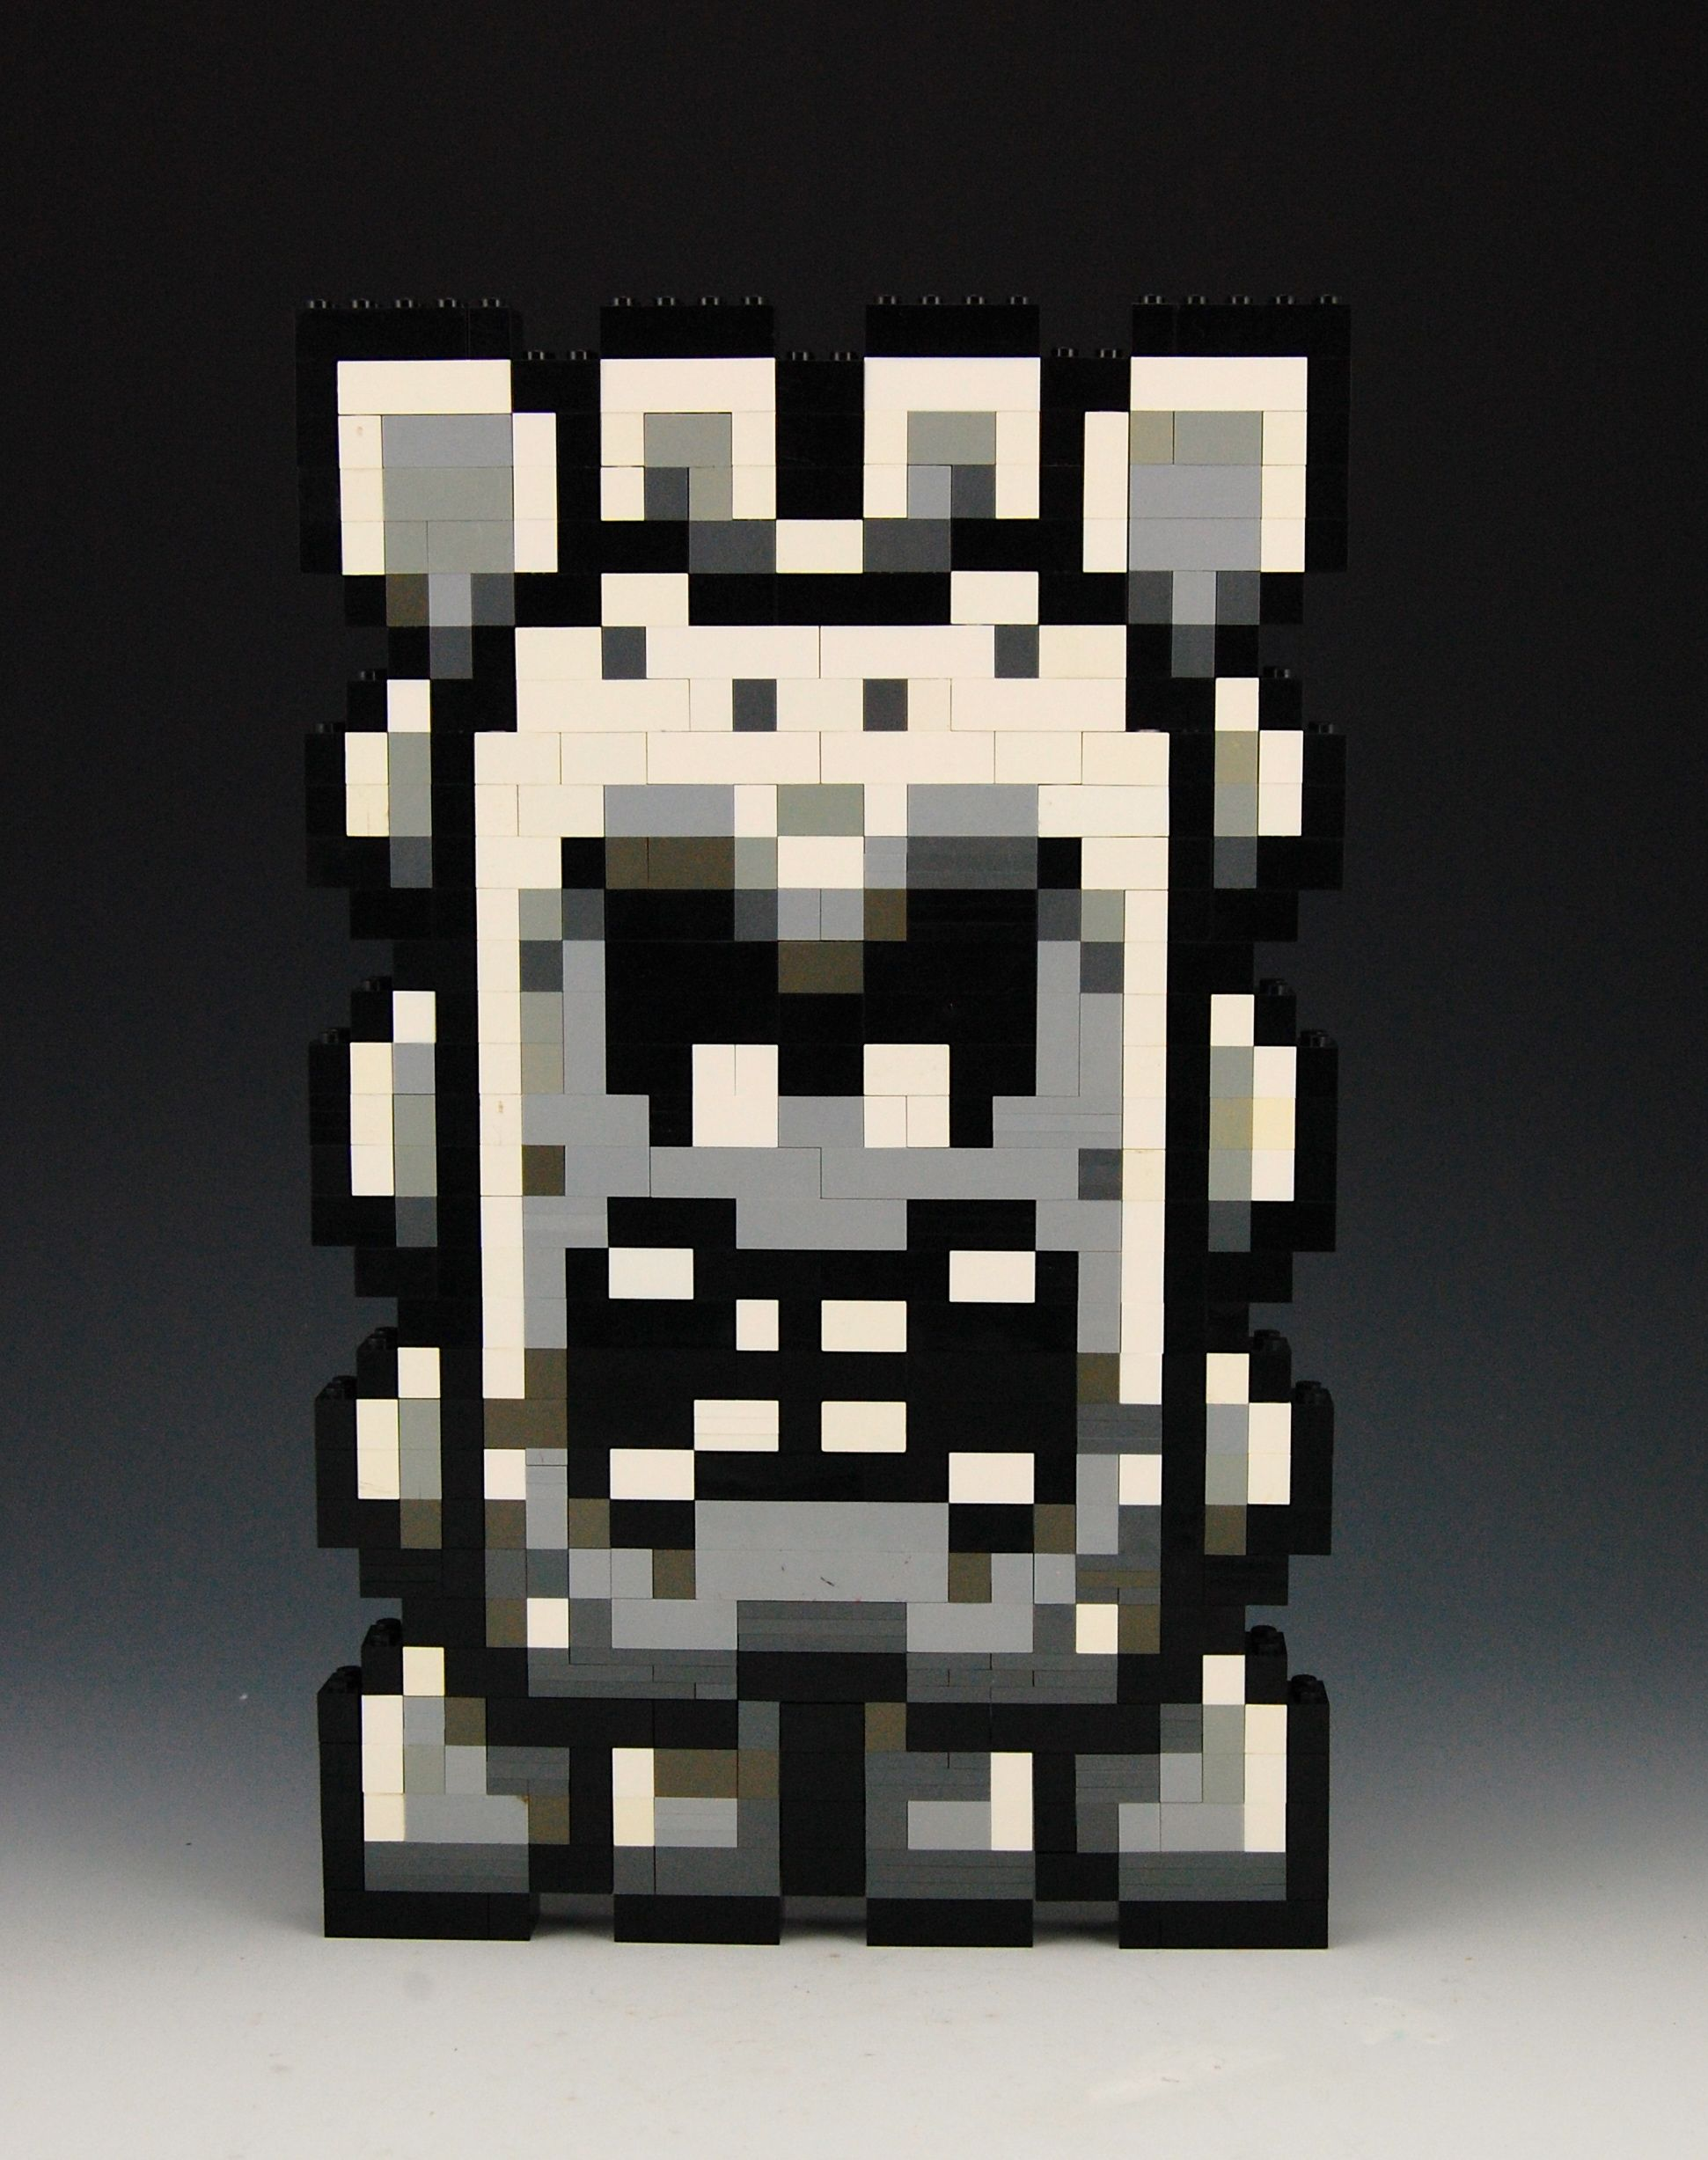 8 Bit Cartoon Characters : Lego thwomp by brickbum nintendo and cartoon characters